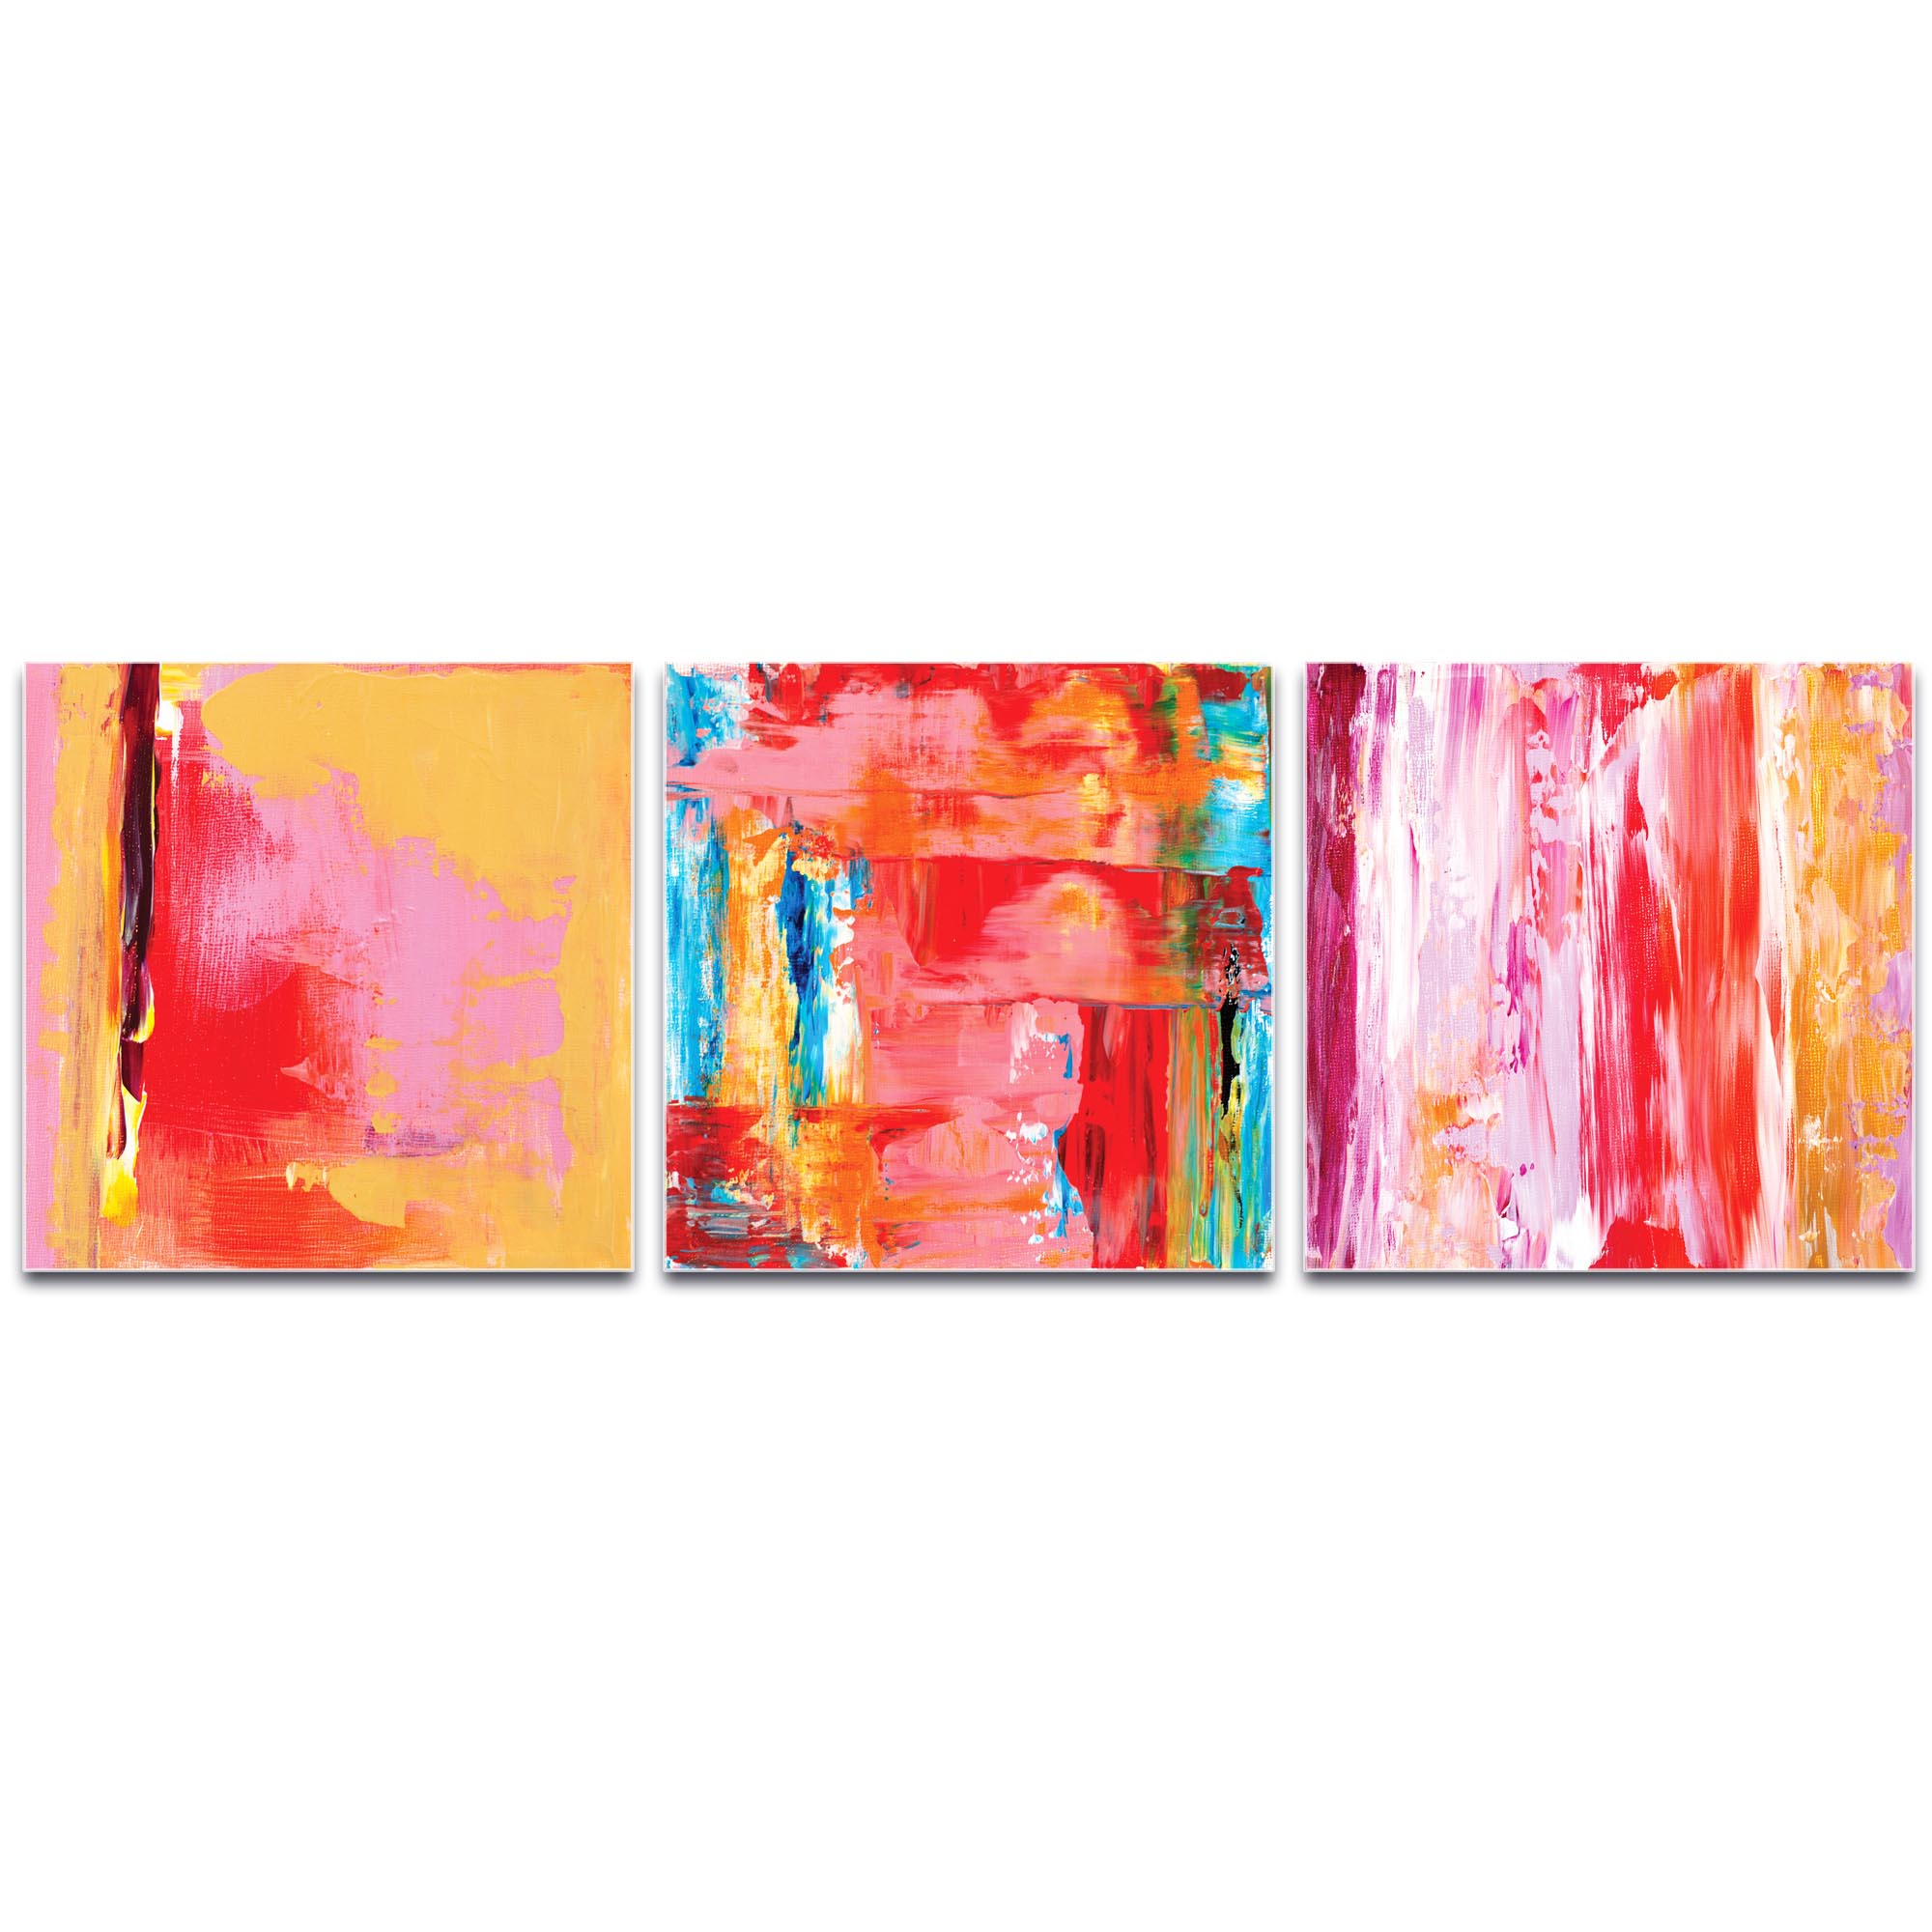 Abstract Wall Art 'Urban Triptych 3 Large' - Urban Decor on Metal or Plexiglass - Image 2